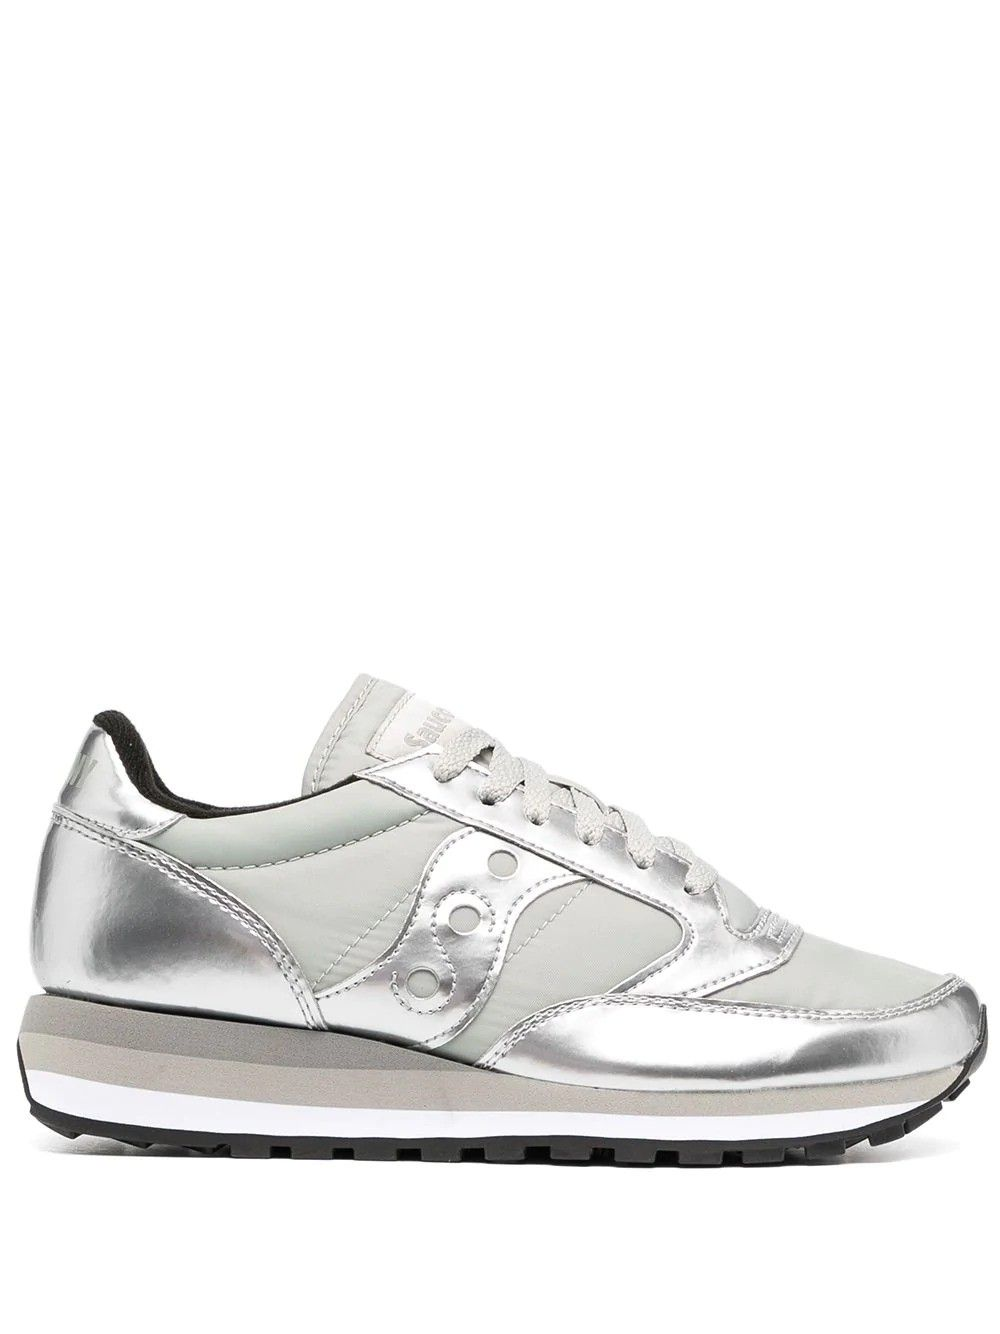 Saucony SAUCONY WOMEN'S SILVER LEATHER SNEAKERS